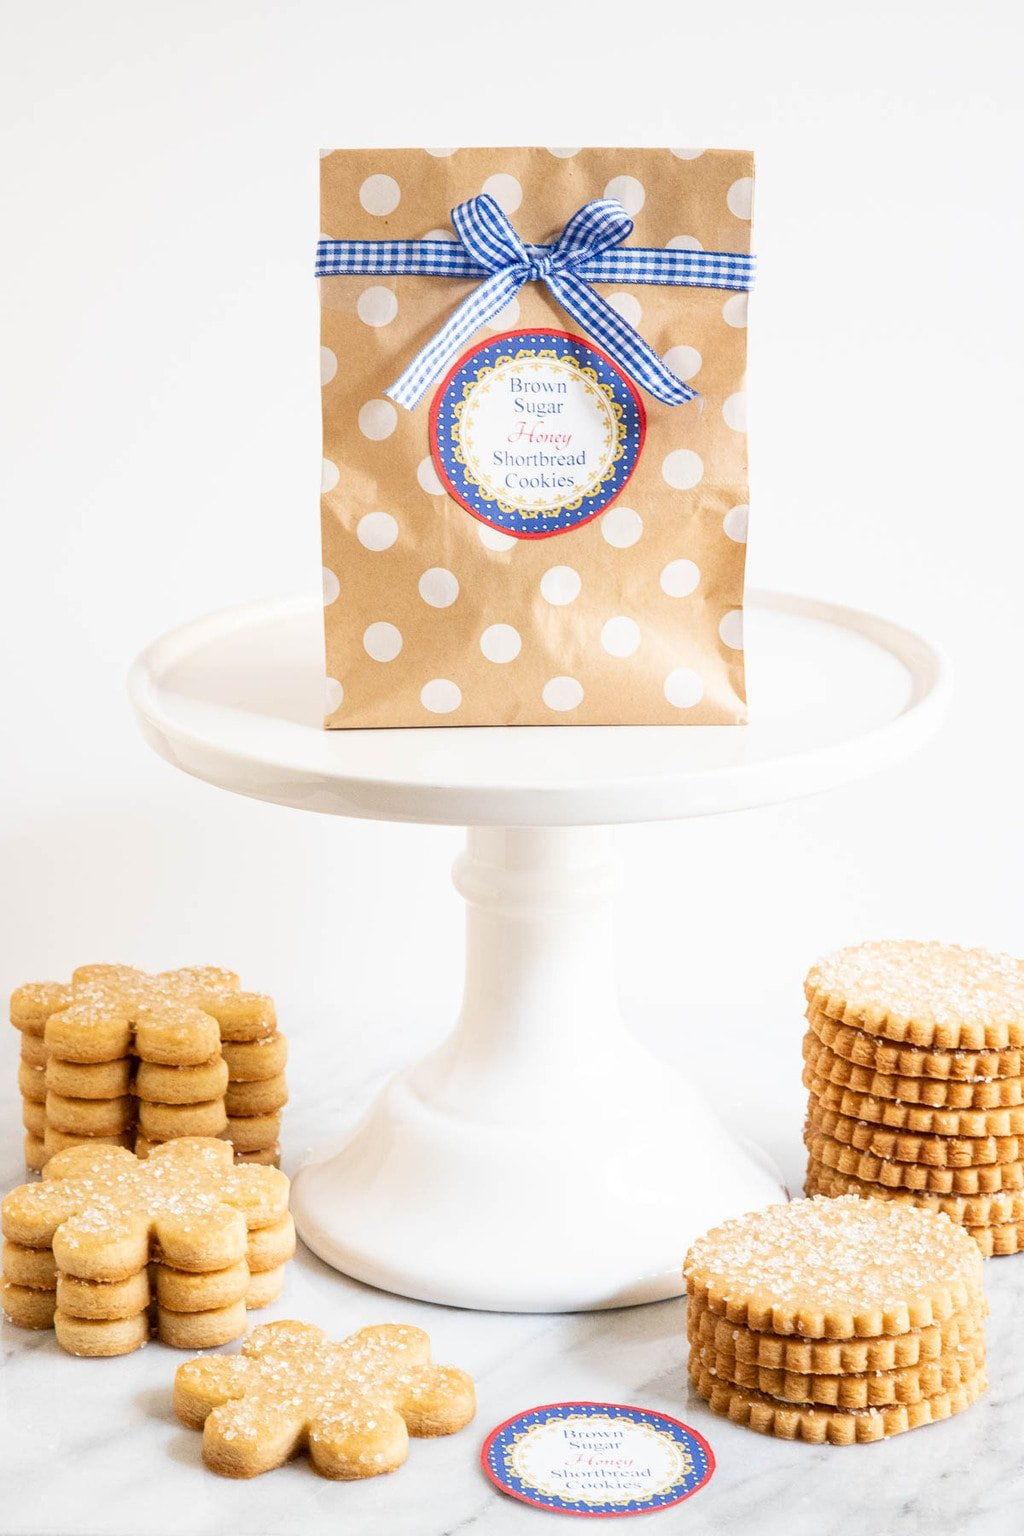 Vertical photo of a gift bag filled with Brown Sugar Honey Shortbread Cookies on a white pedestal cake stand with stacks of the cookies piled in front of the stand and a label for the cookies on the bag.